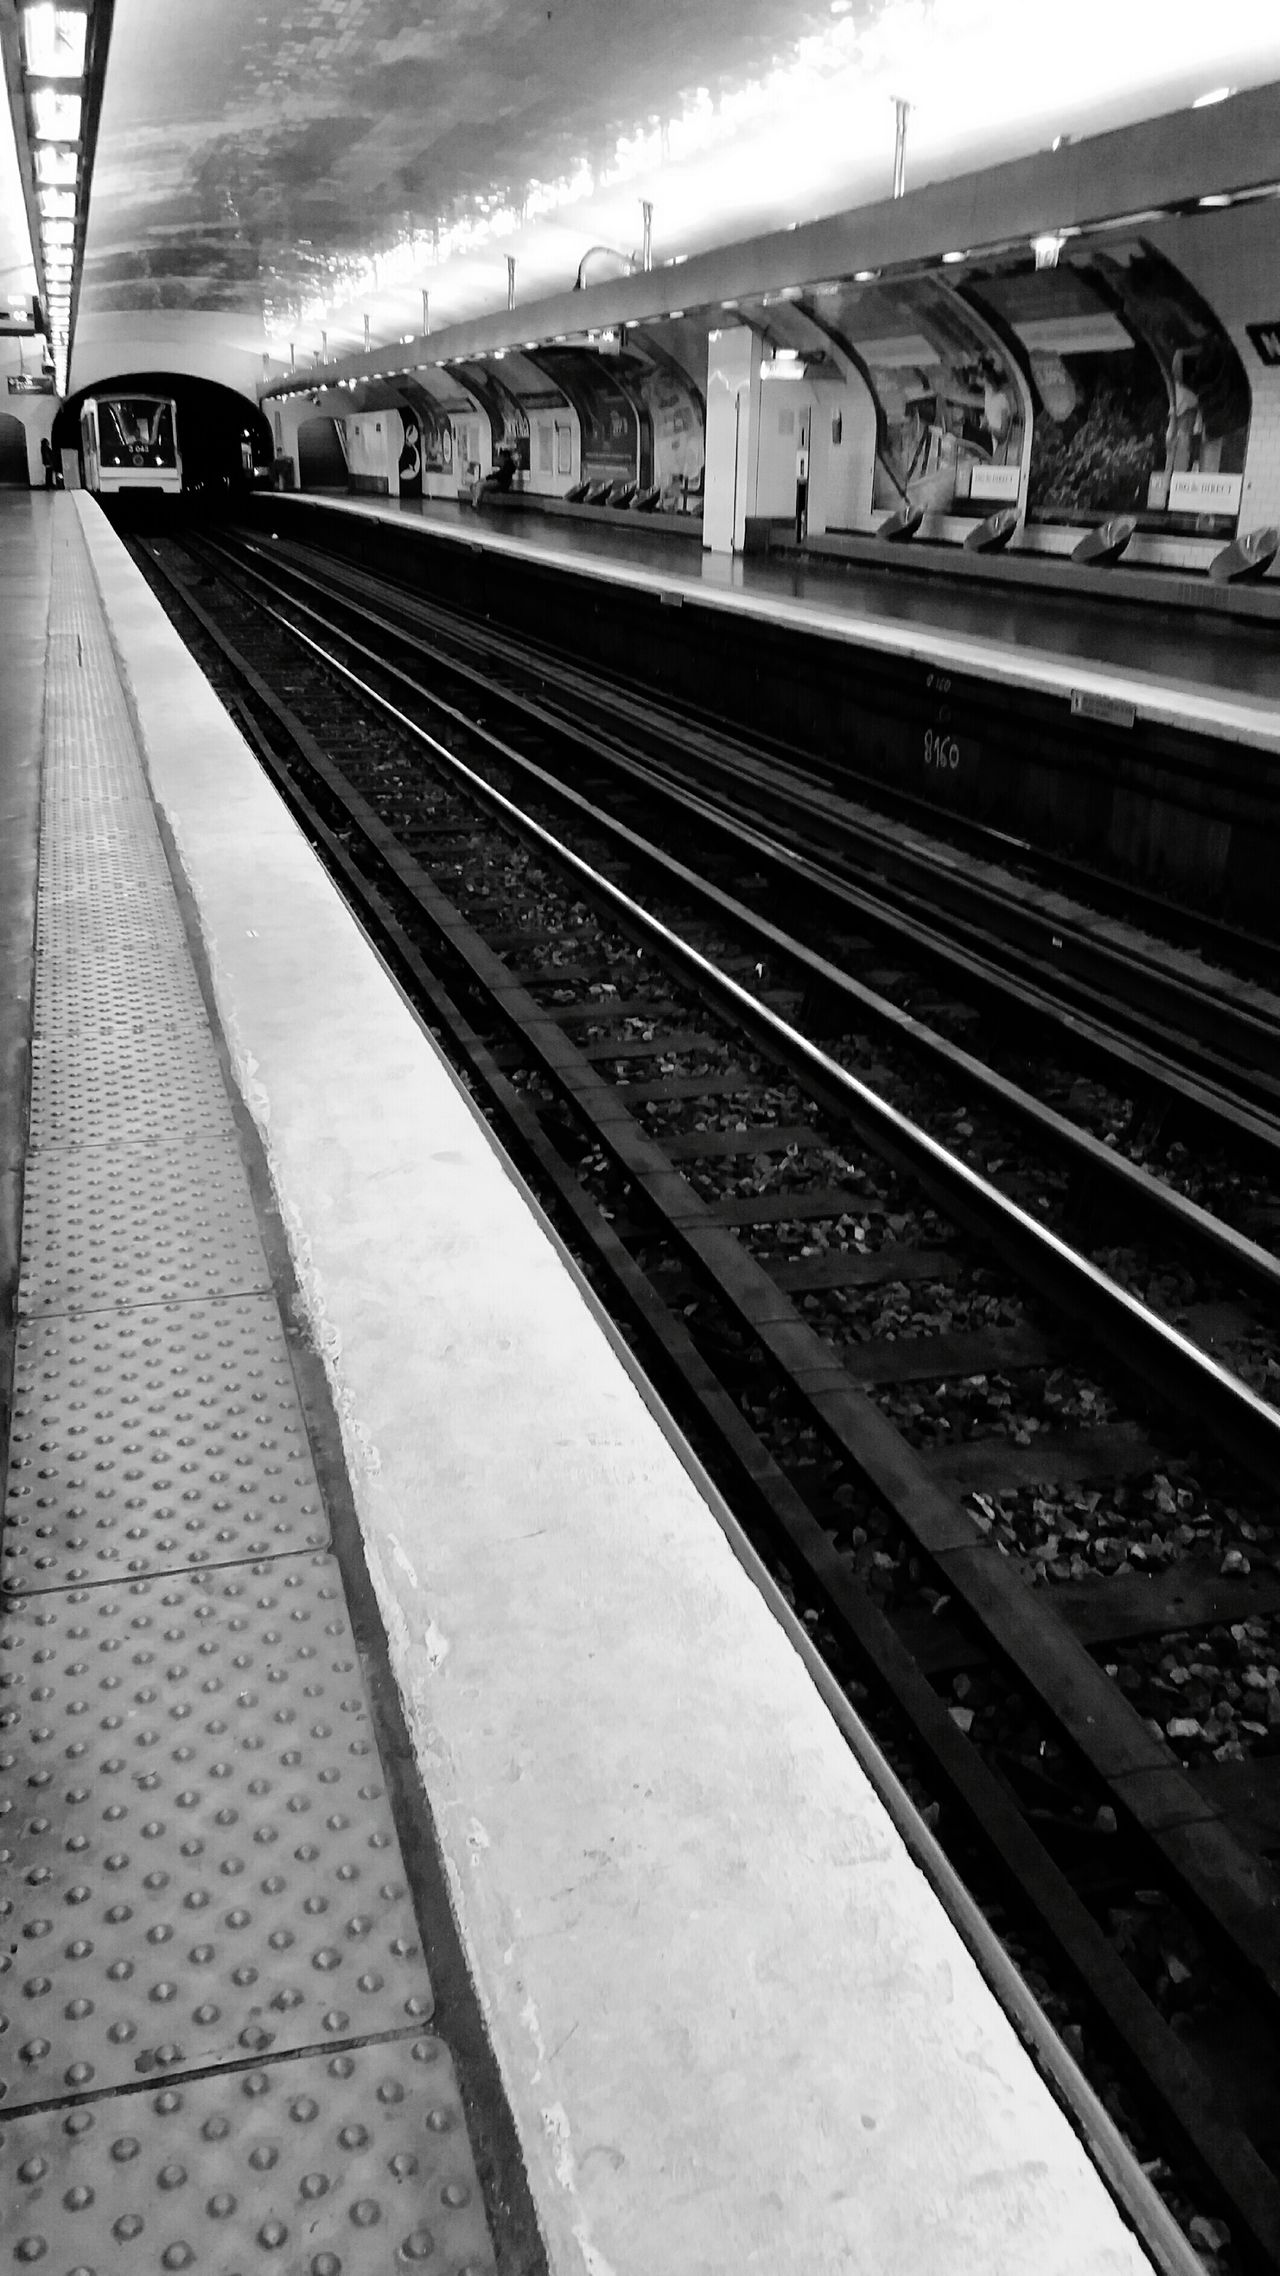 Metro Subway Railroad Track Railroad Track Hello World Check This Out Eye4photography  Eye4photography  EyeEm Best Shots Black And White Black And White Photography Public Transportation Rail Transportation Railroad Station Platform Railroad Station Travel Mode Of Transport Eye For Photography Vanishing Point Modern City Life Underground Station